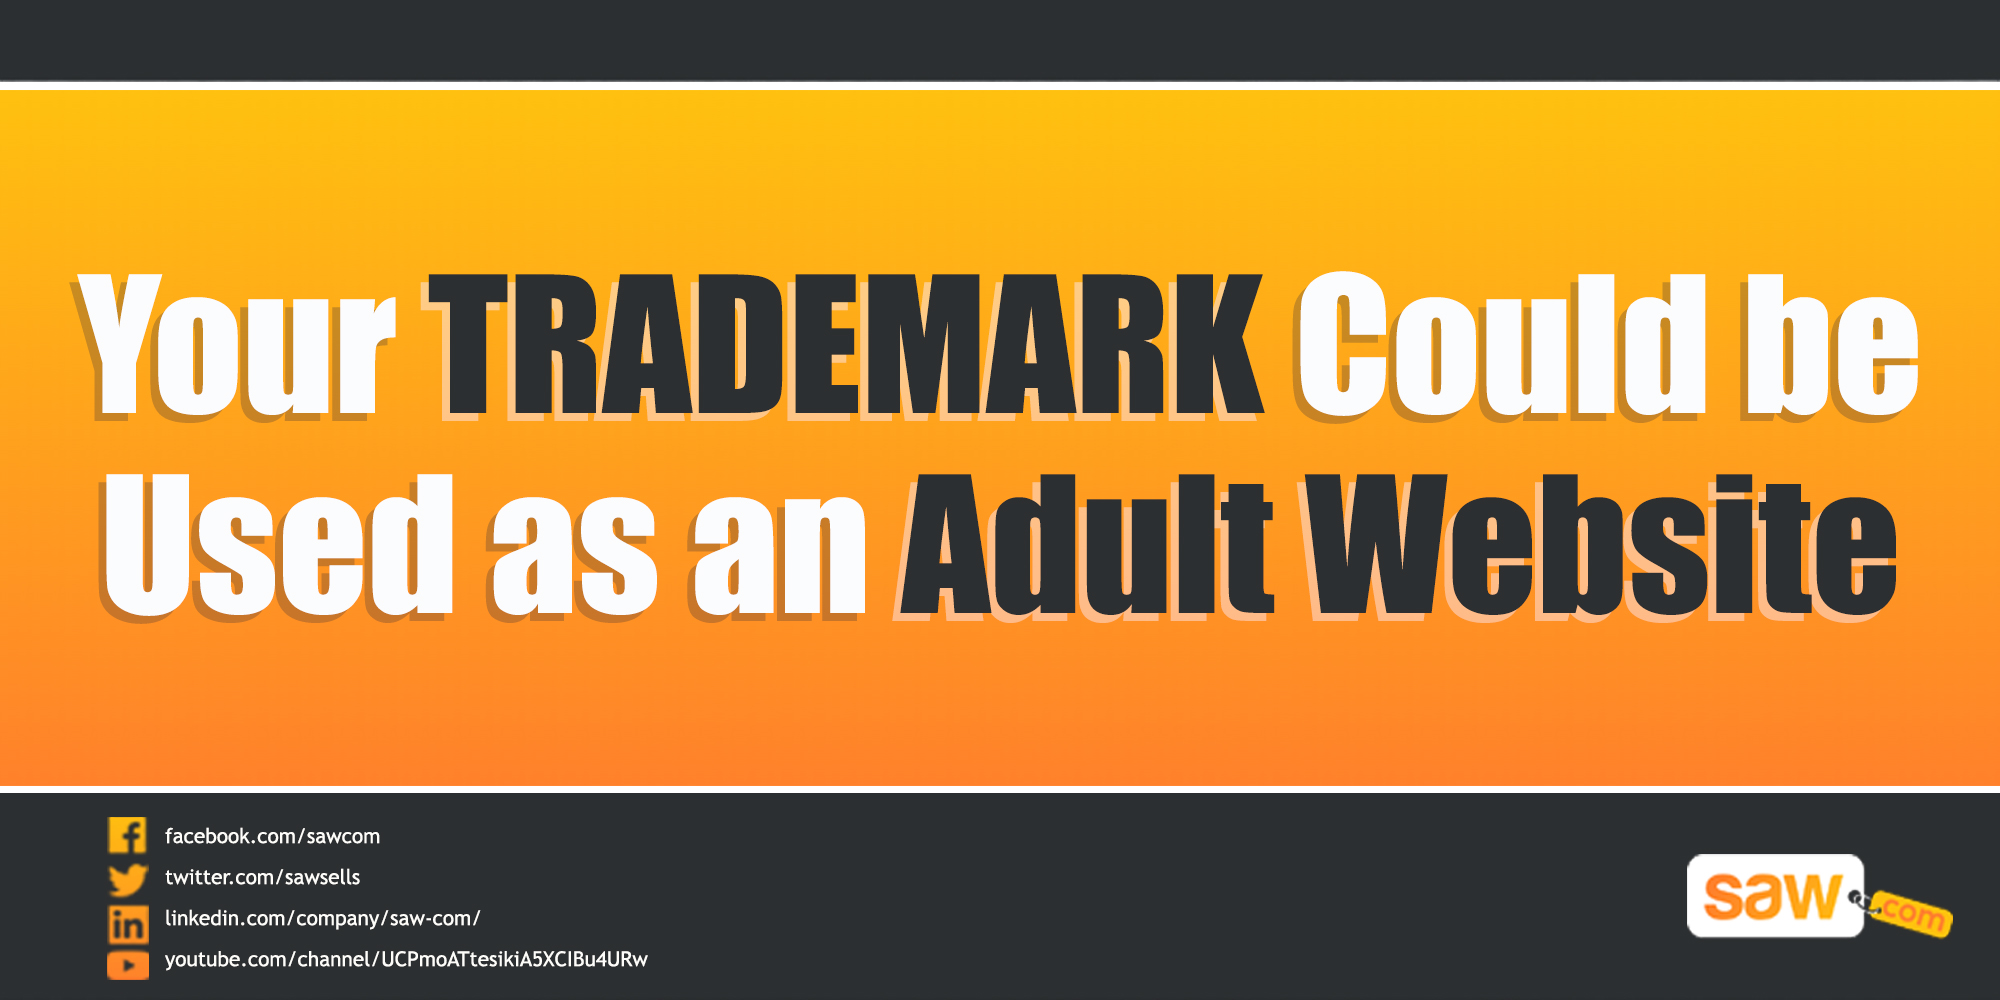 Your Trademark Could be Used as an Adult Website